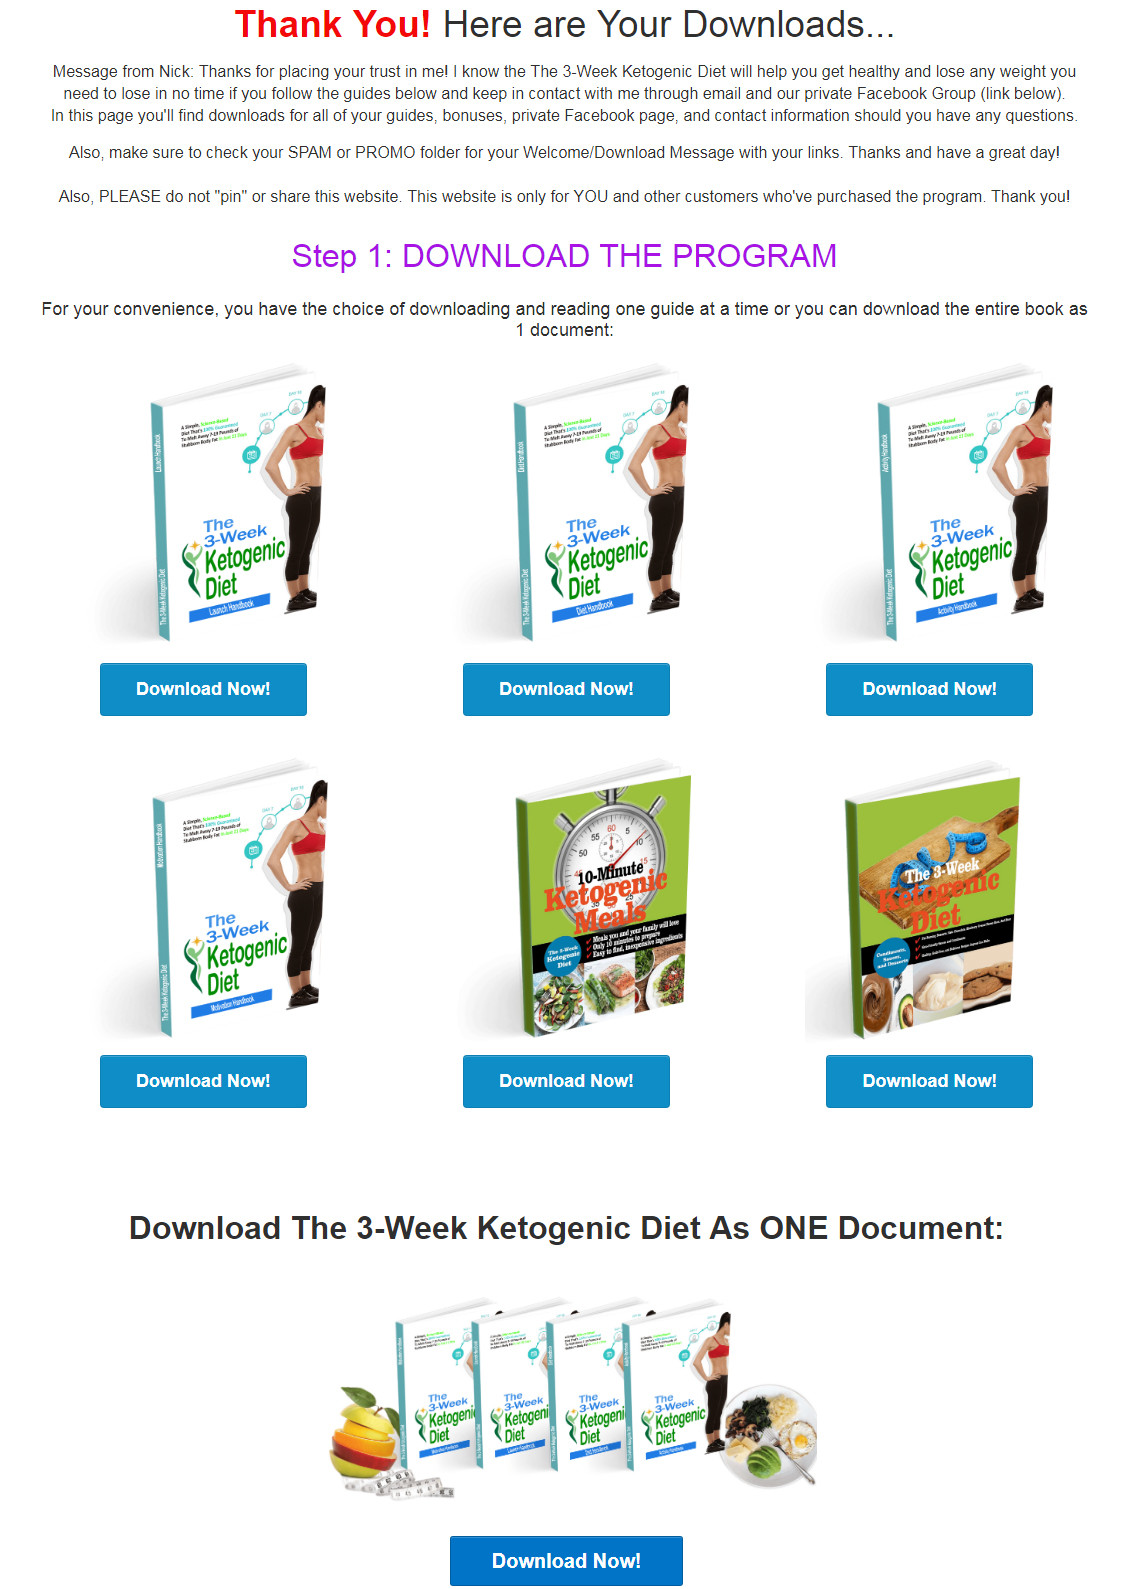 3 Week Ketogenic Diet Download Page